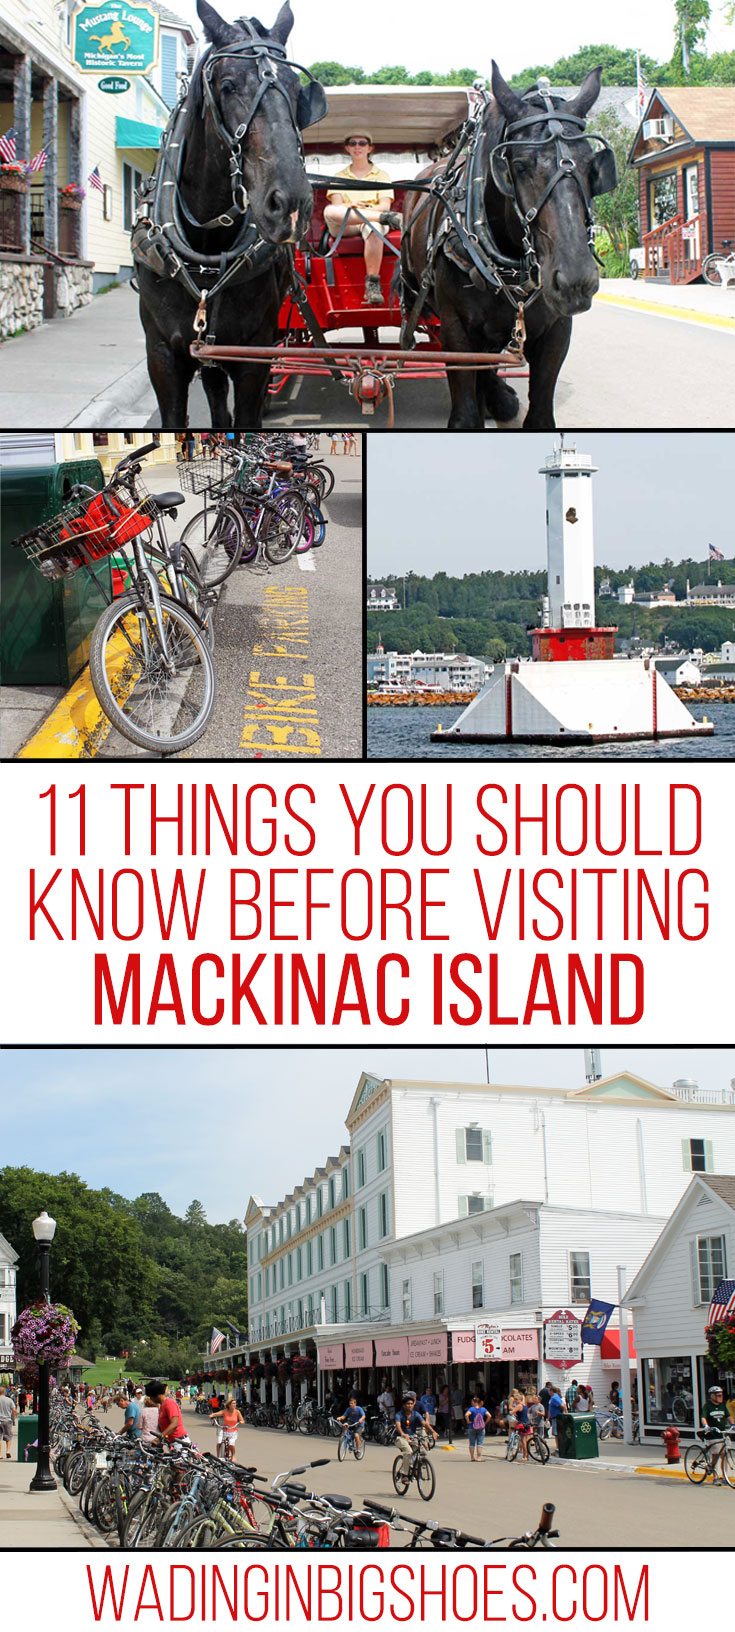 11 Things You Should Know Before Visiting Mackinac Island - tips to help you plan your Mackinac Island vacation! // [via Wading in Big Shoes]